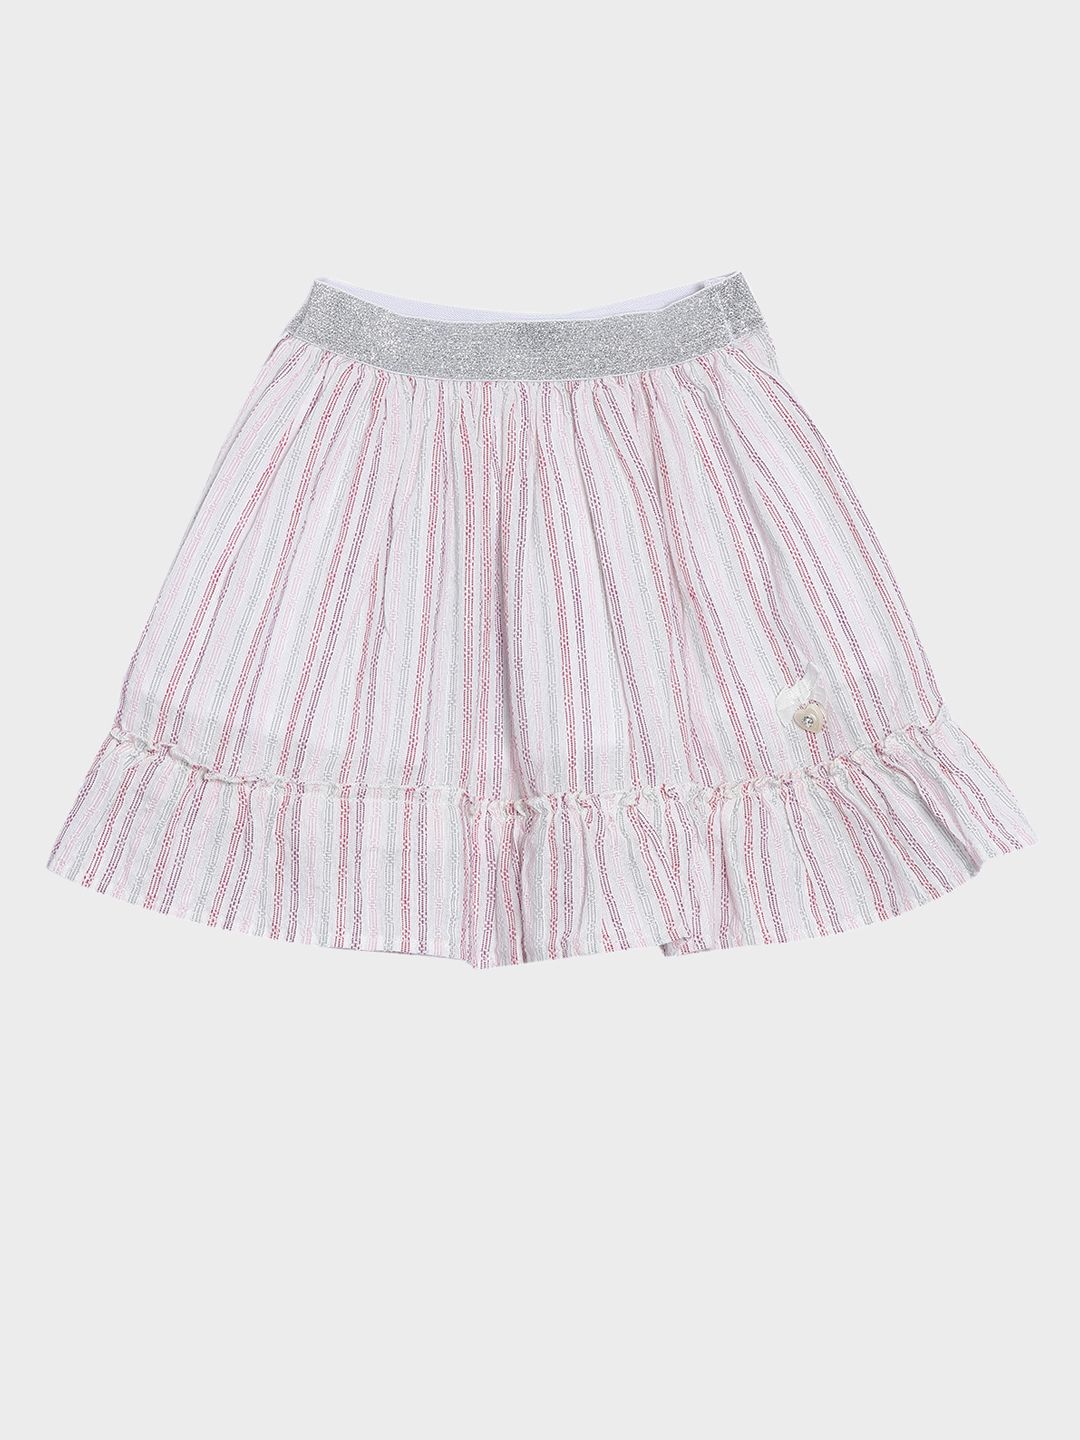 Nuberry | Nuberry Girls cottonMulticolored skirts